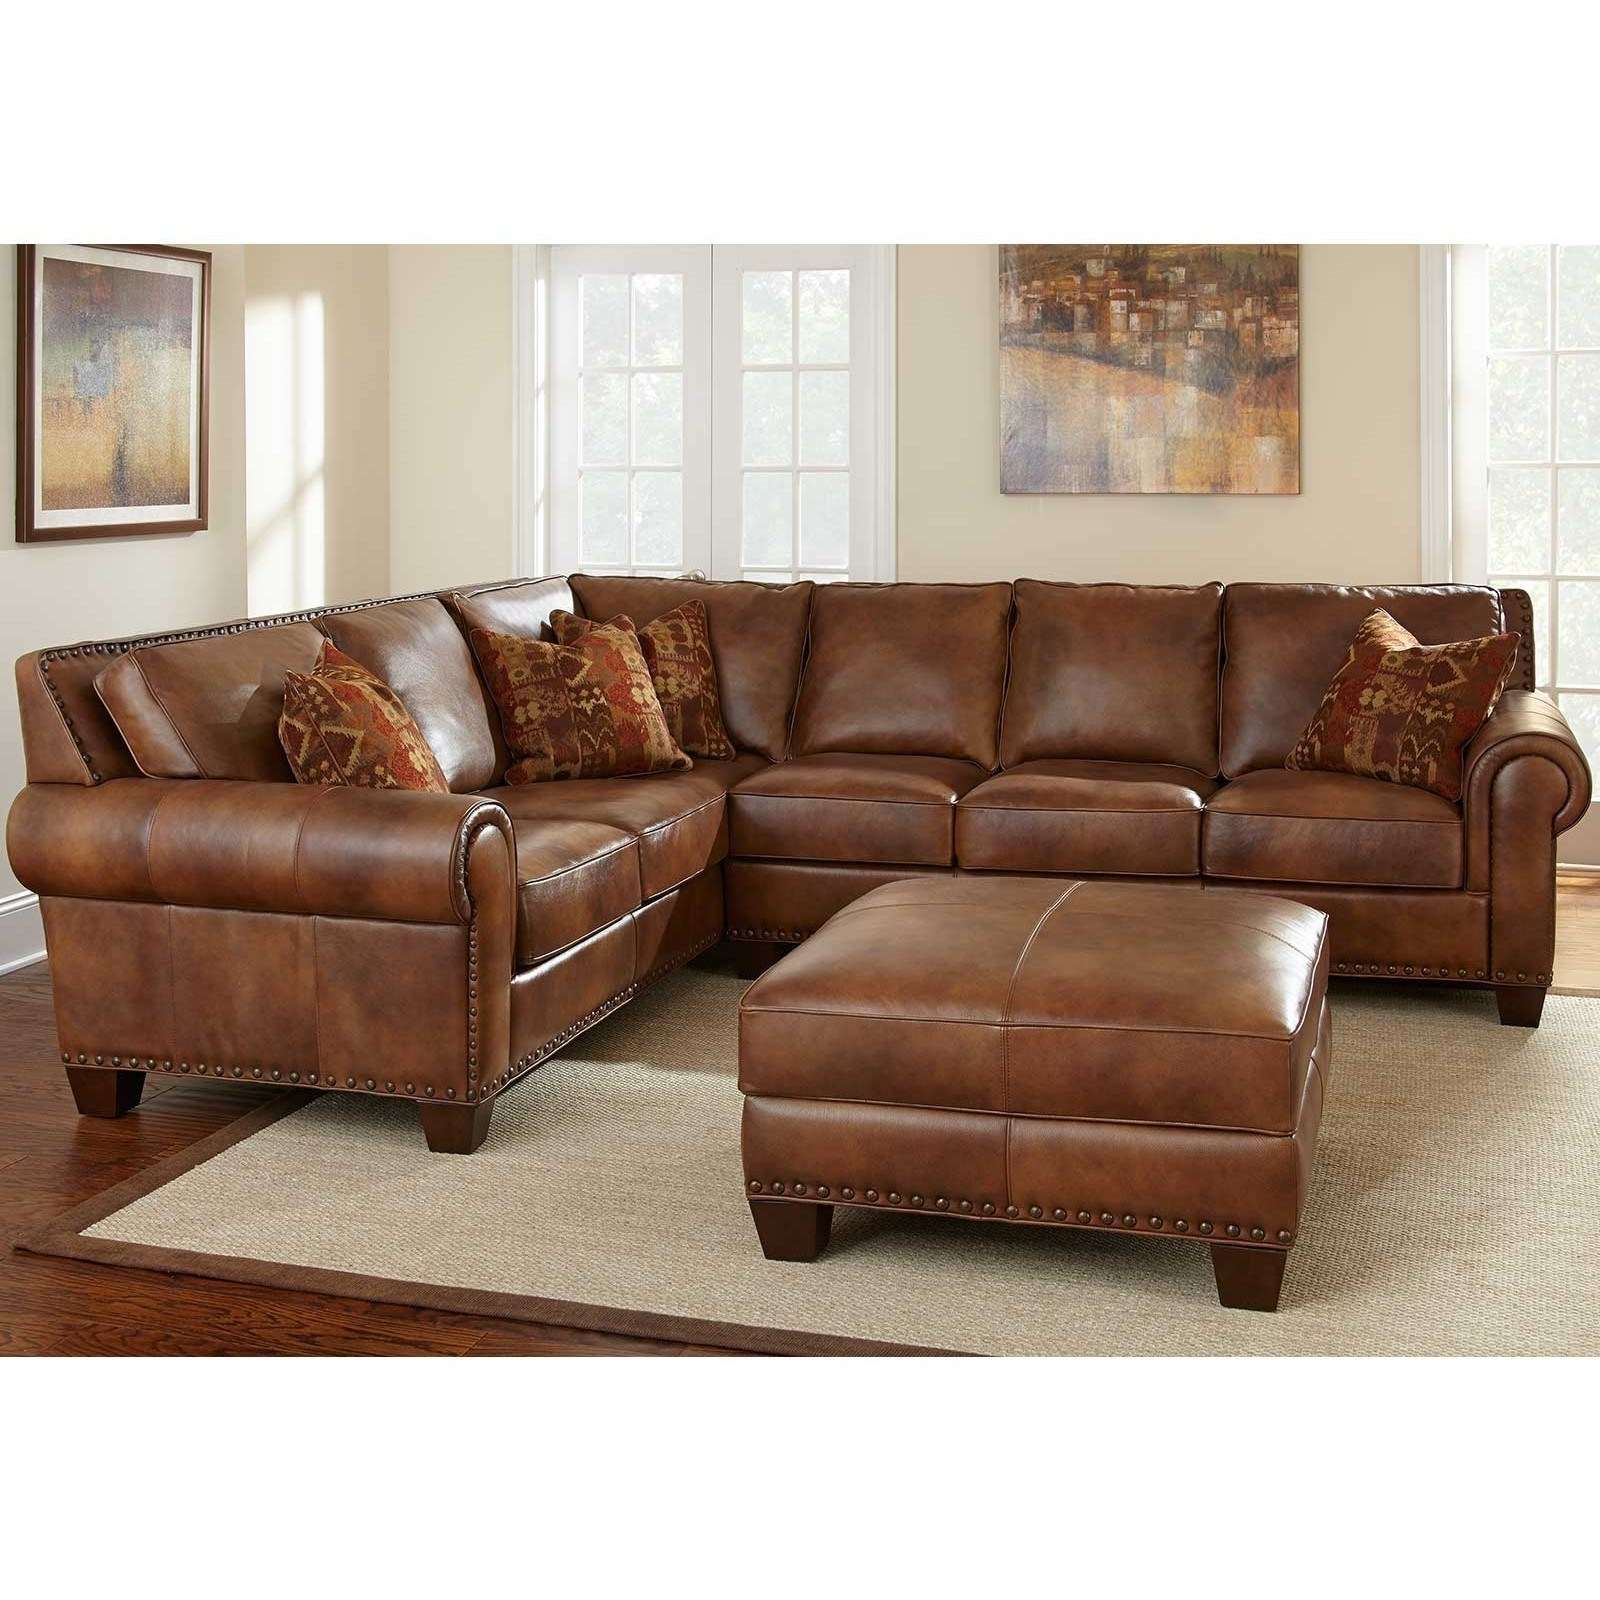 On Sale Sectional Sofas Inside Most Popular Leather Sectional Sofas (View 19 of 20)